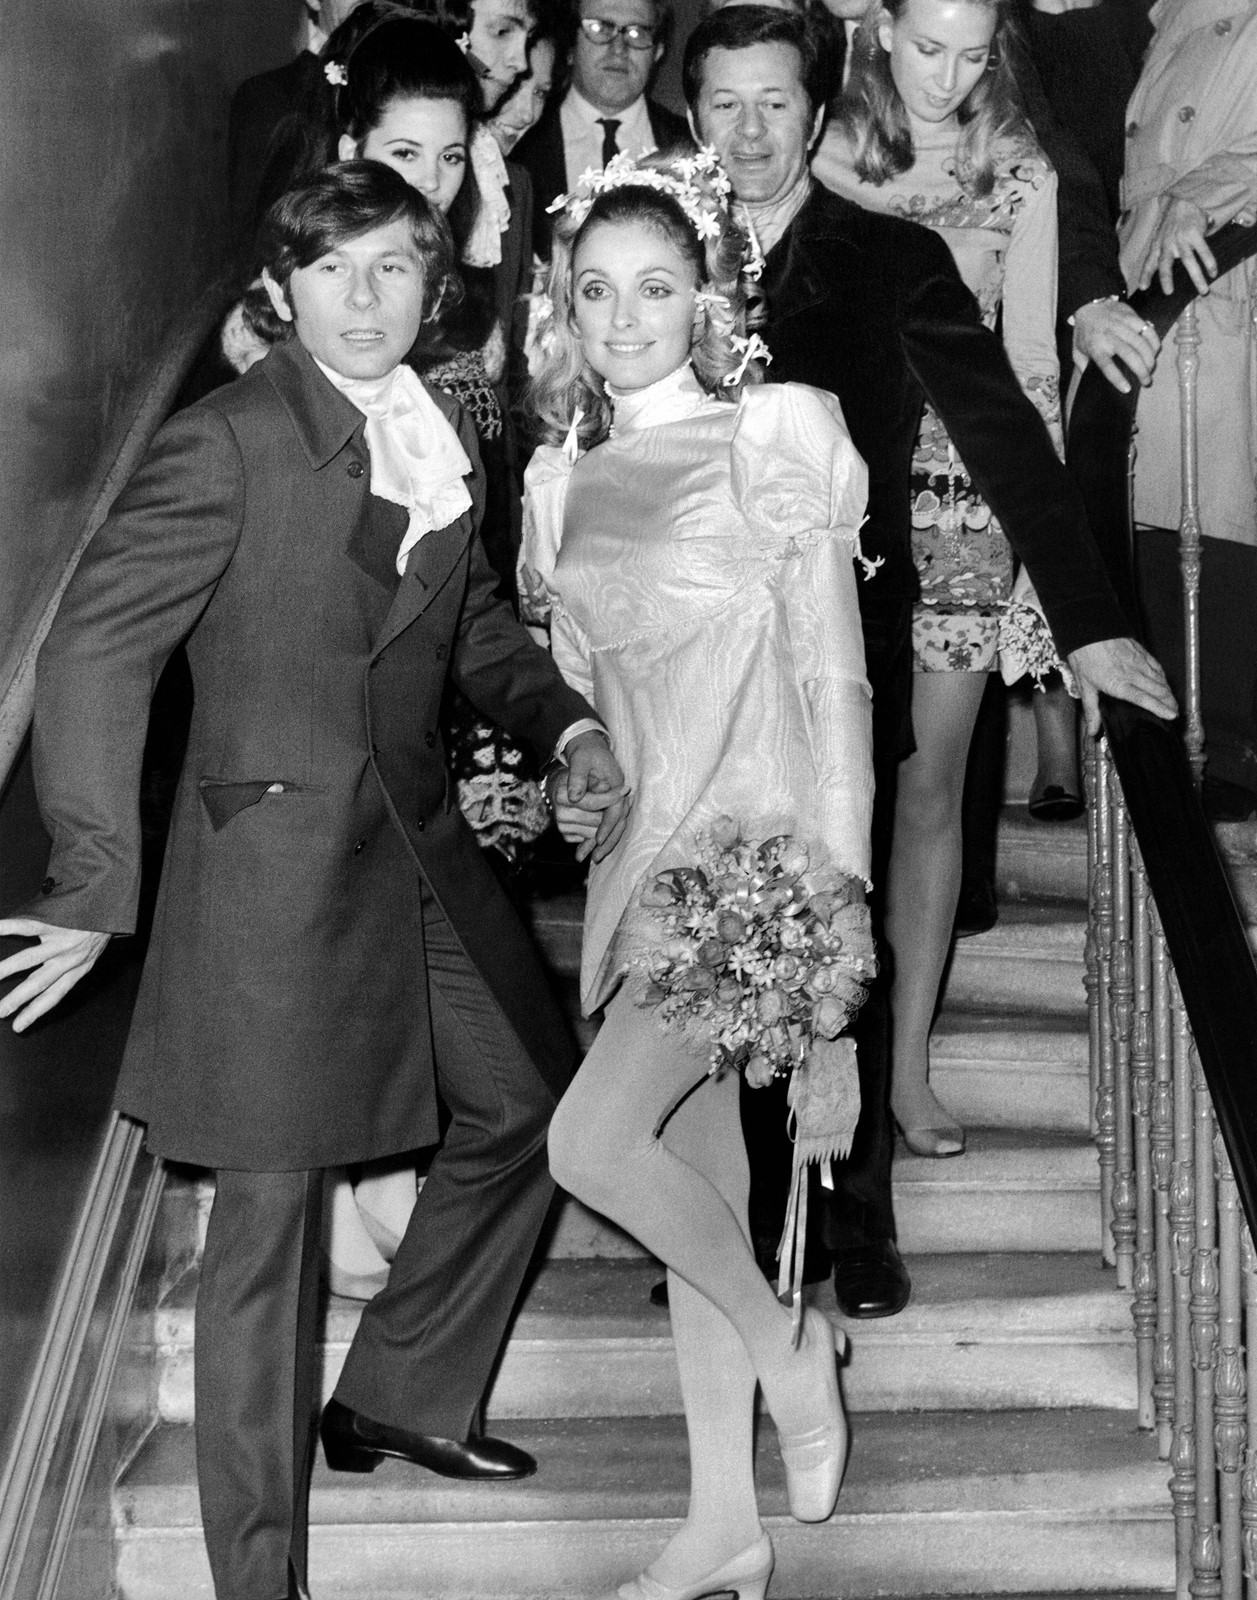 Sharon Tate, right, is shown with film director Roman Polanski at their wedding in London in 1968. — Photograph: Agence France-Presse/Getty Images.